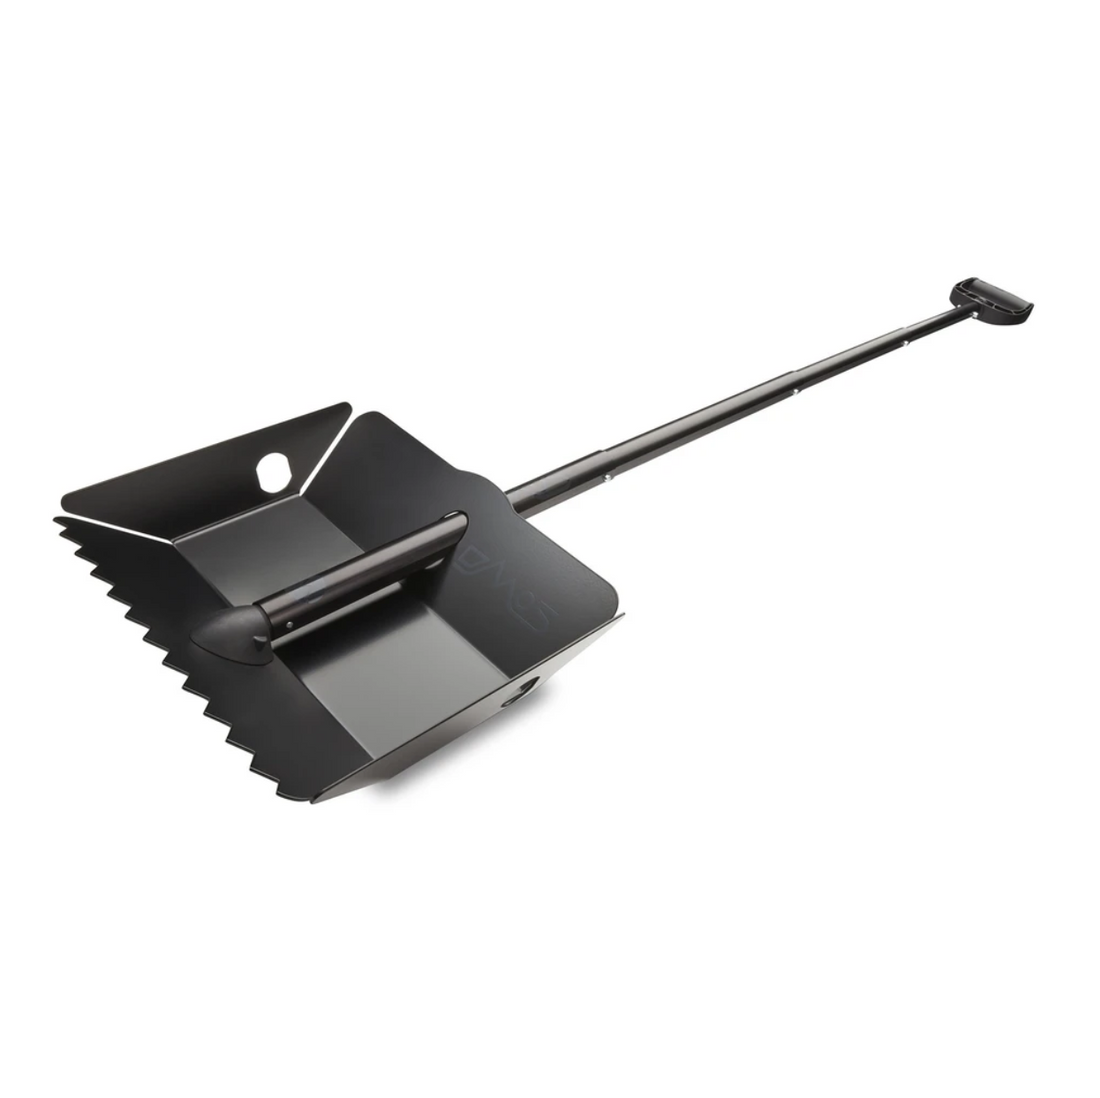 THE ALPHA EXPEDITION SHOVEL™